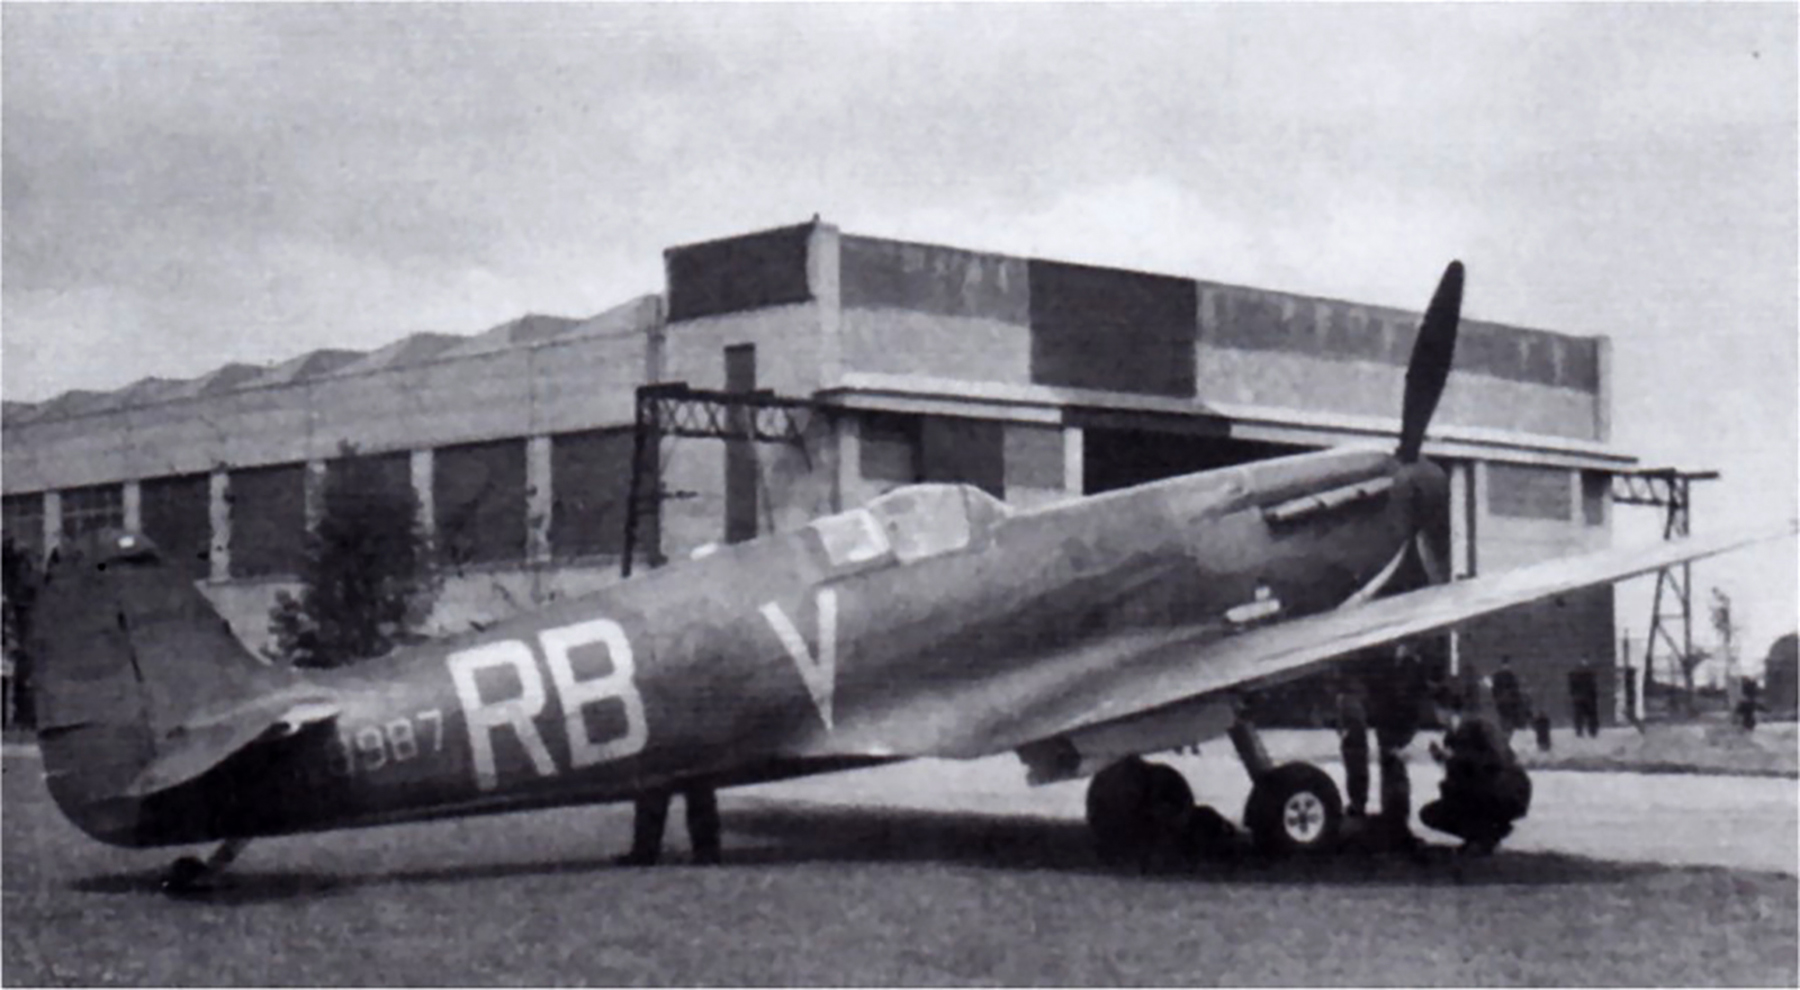 Spitfire MkI RAF 66Sqn RBV K9987 with twin blade propellor England 1940 01